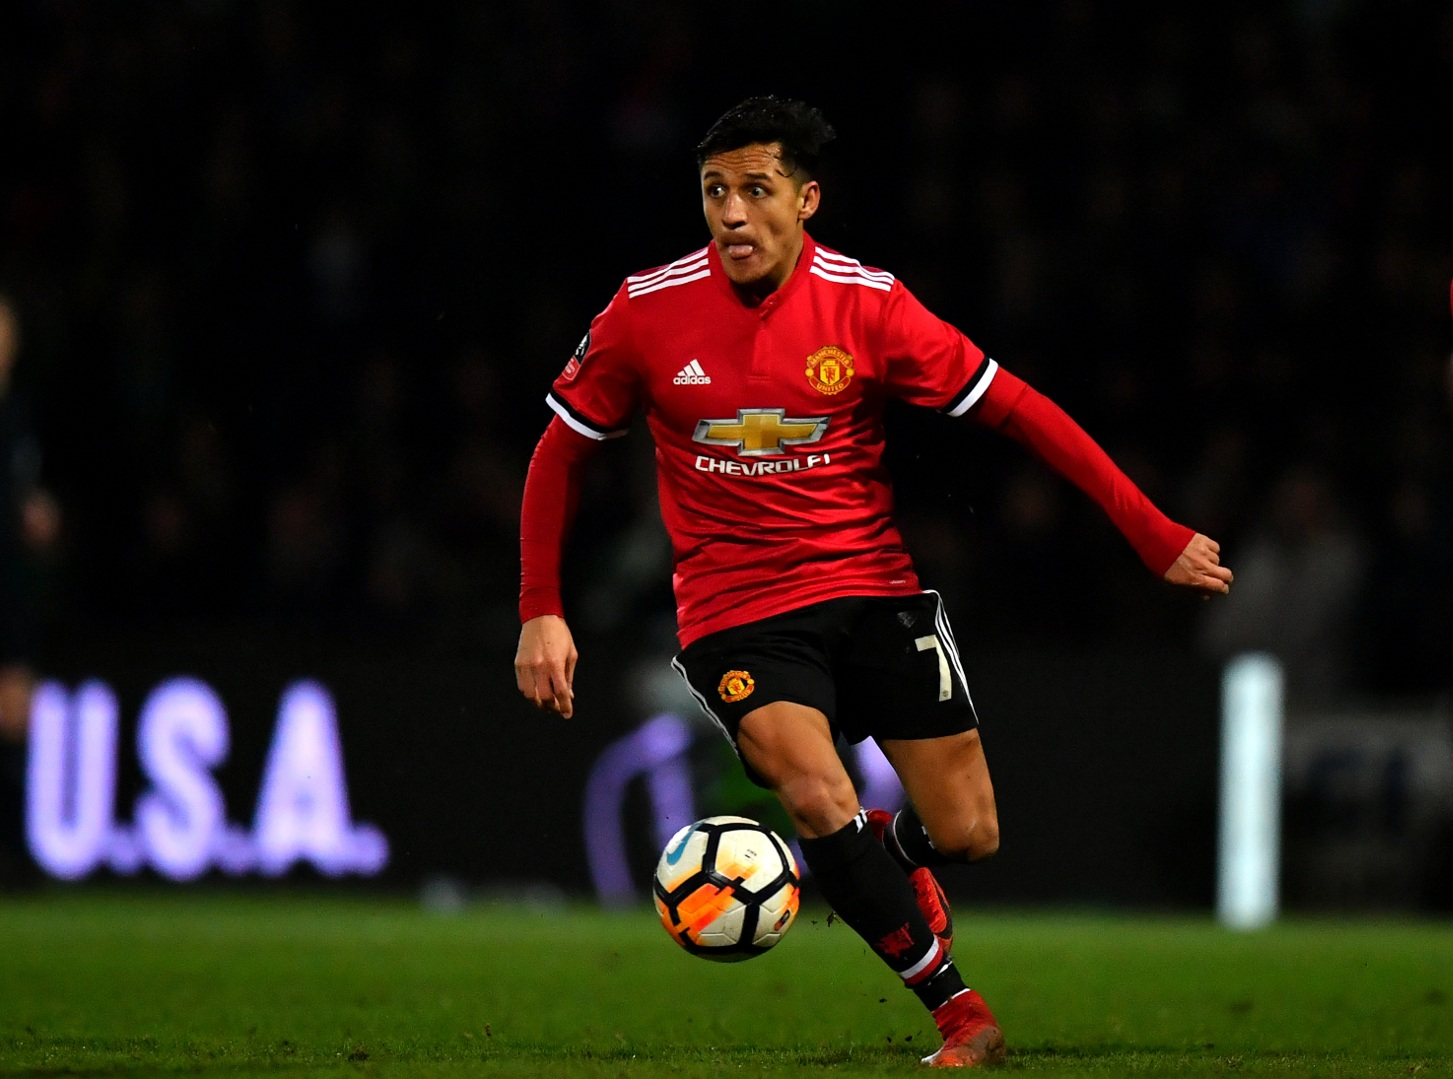 Alexis Sanchez has refused to take a pay cut at United